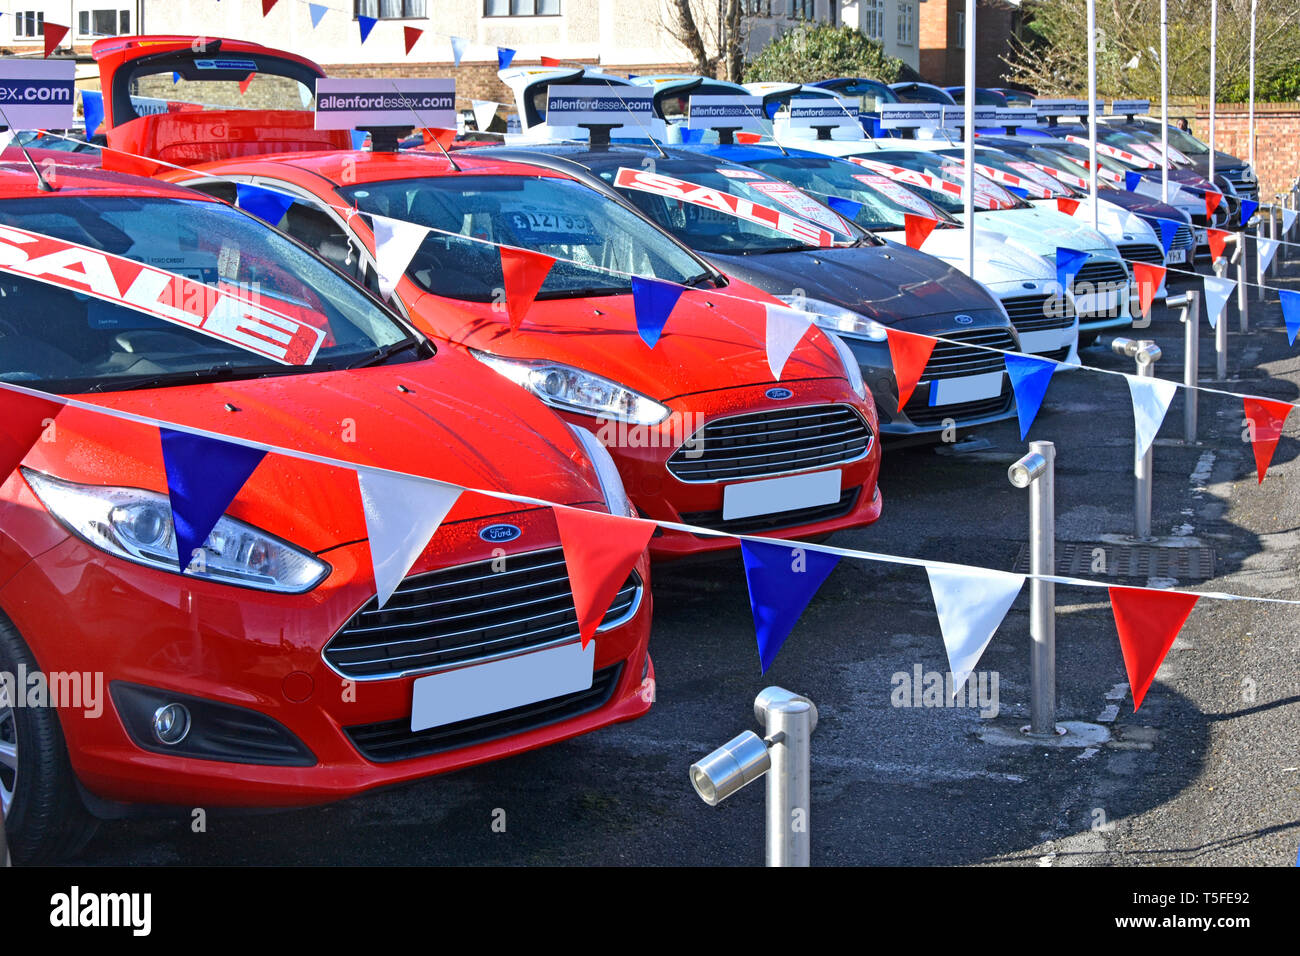 Sale poster at Ford car dealership business forecourt display of used second hand red white & blue cars & bunting in dealer sales promotion England UK - Stock Image